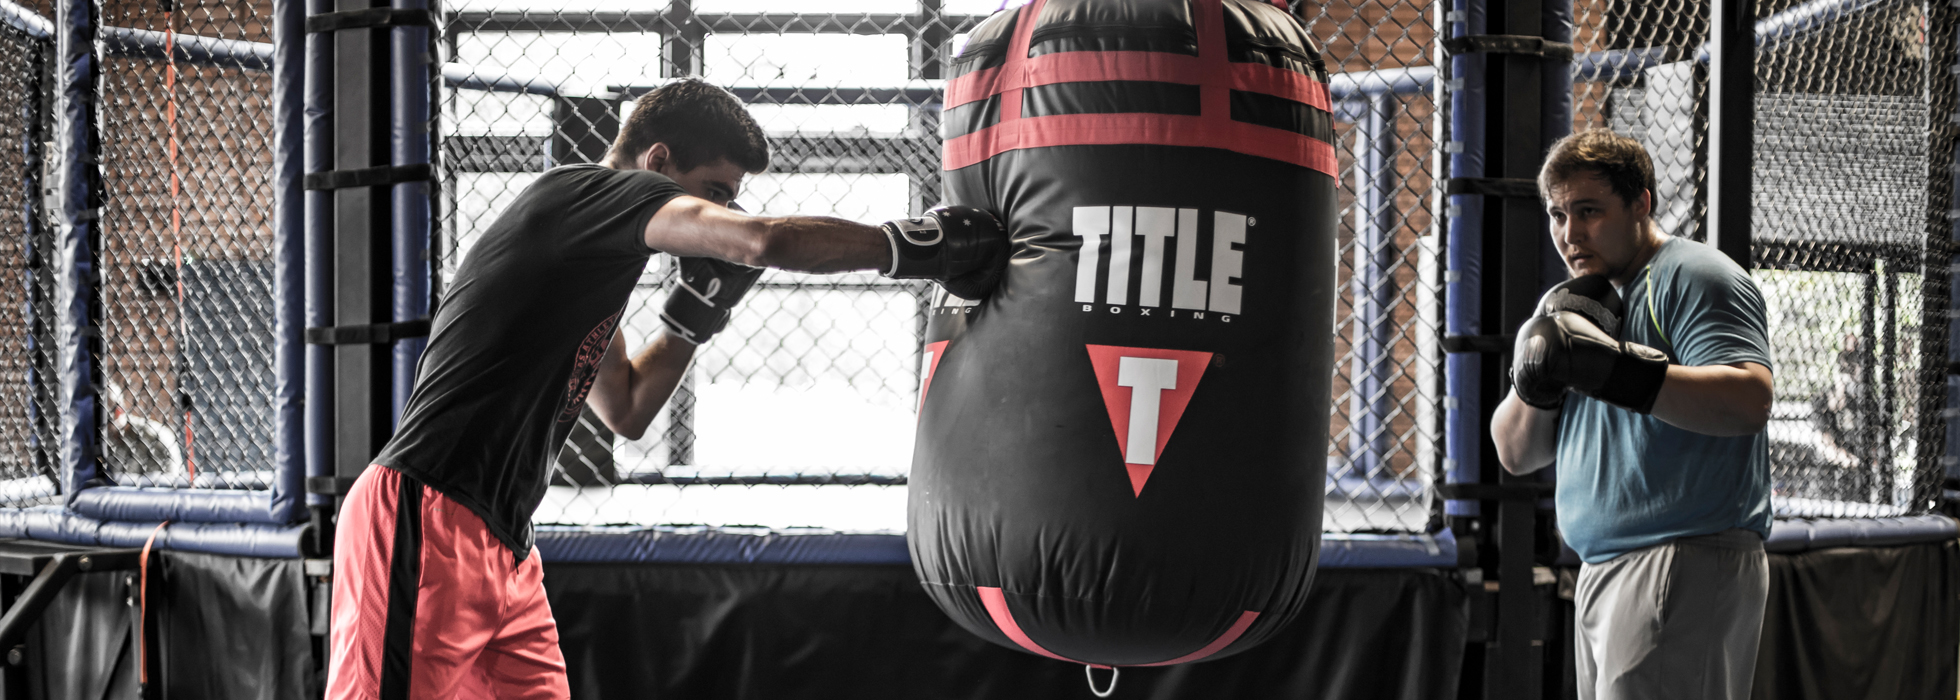 Boxing Gym near Atlanta GA, Boxing Gym near Cartersville GA, Boxing Gym near Chamblee GA, Boxing Gym near Midtown Atlanta GA, Boxing Gym near Sandy Springs GA, Boxing Gym near Dacula GA